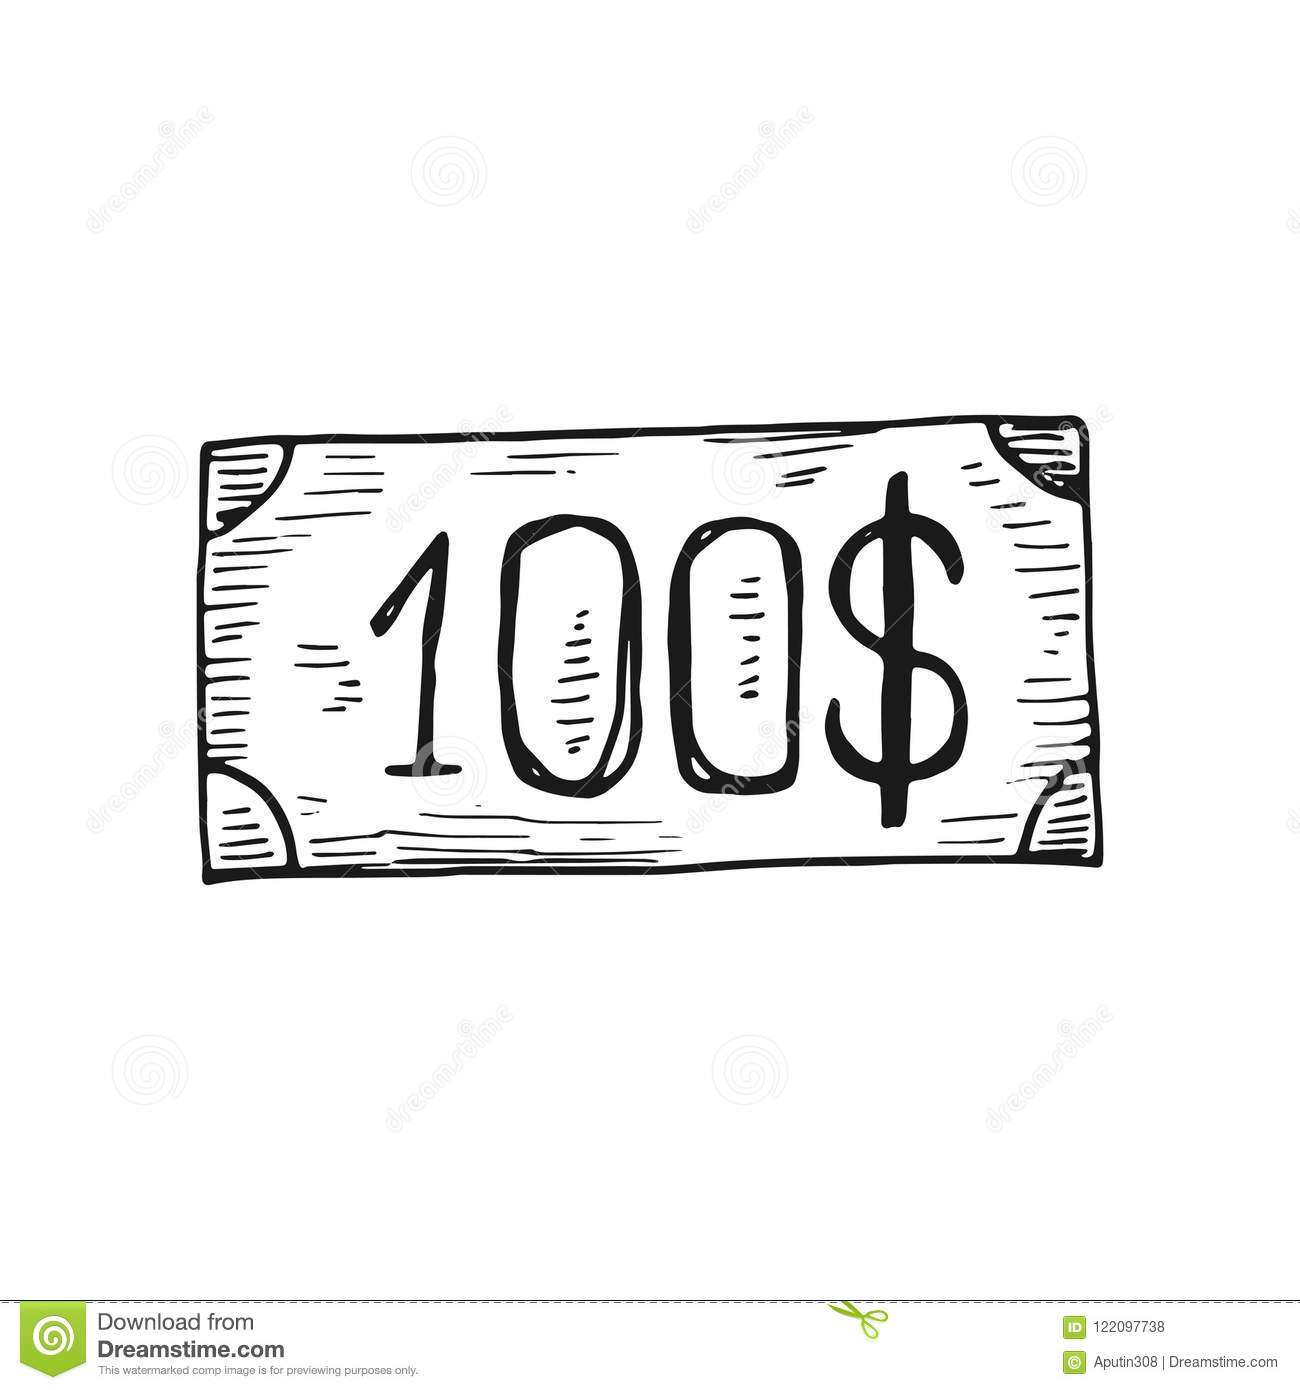 Bill hundred dollars icon. isolated on white background